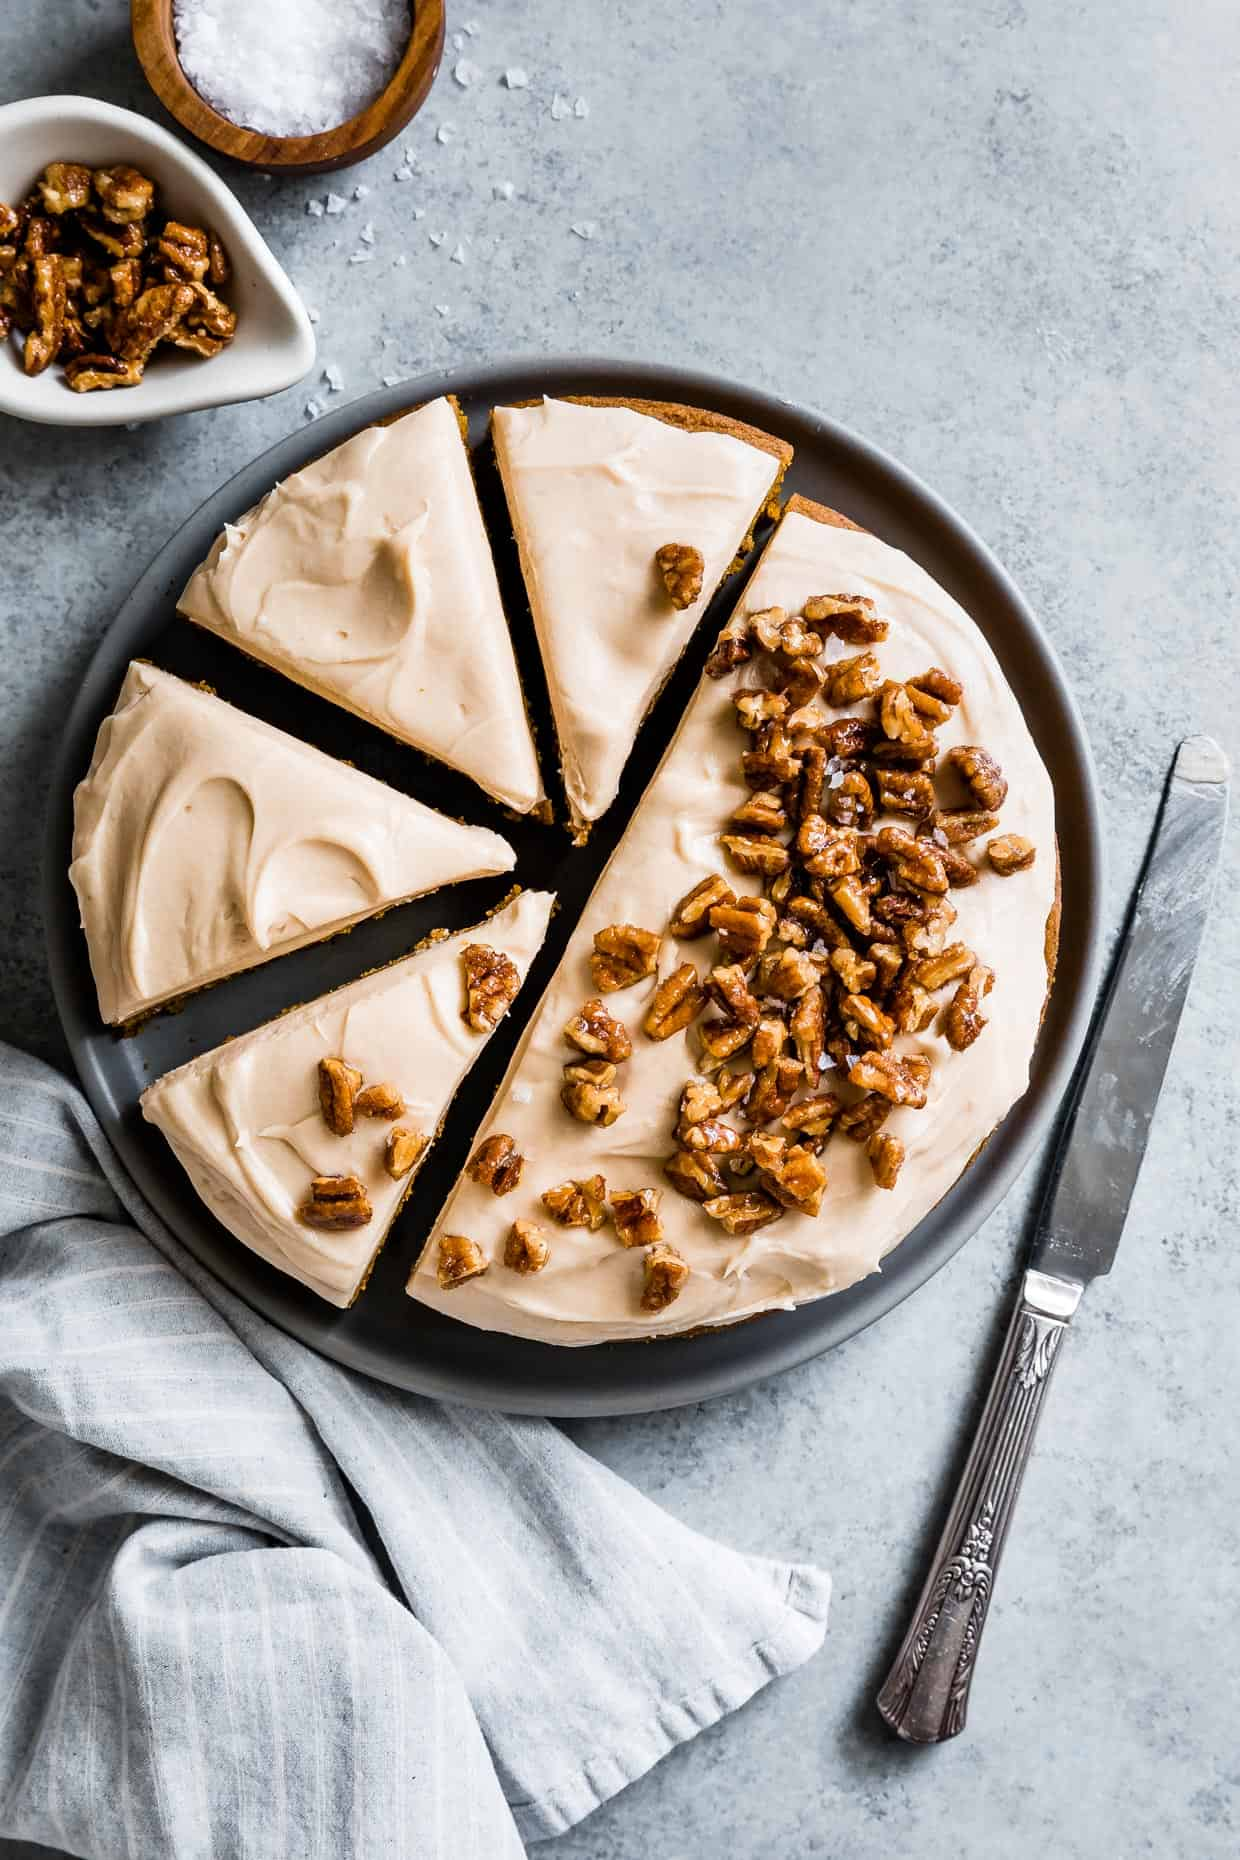 Salted Caramel Cream Cheese Frosting